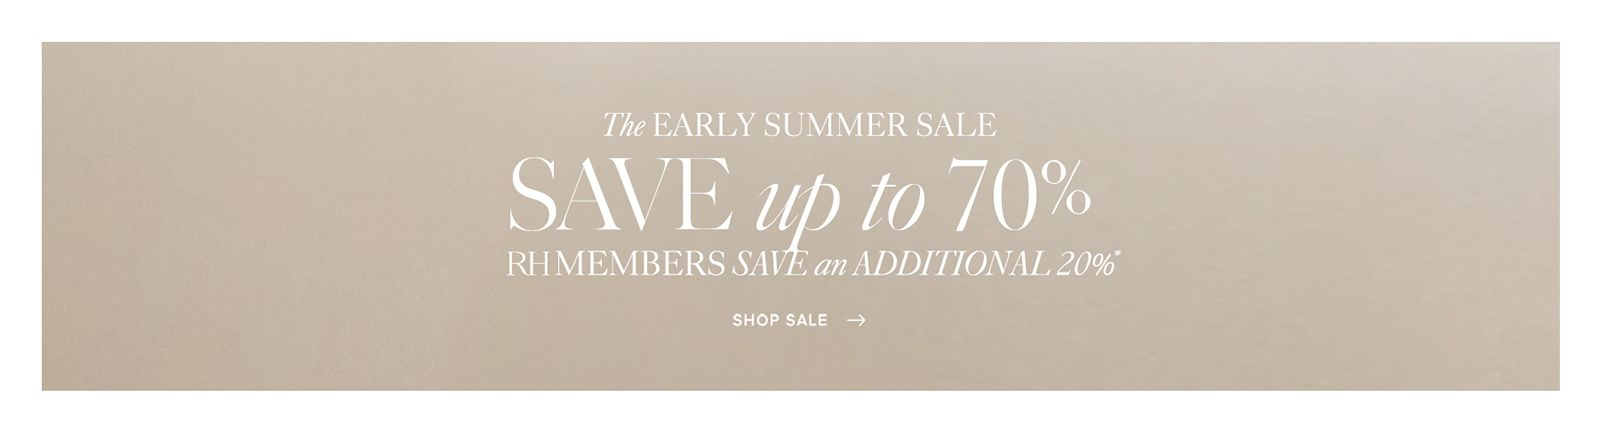 Save up to 70% at the Early Summer Sale